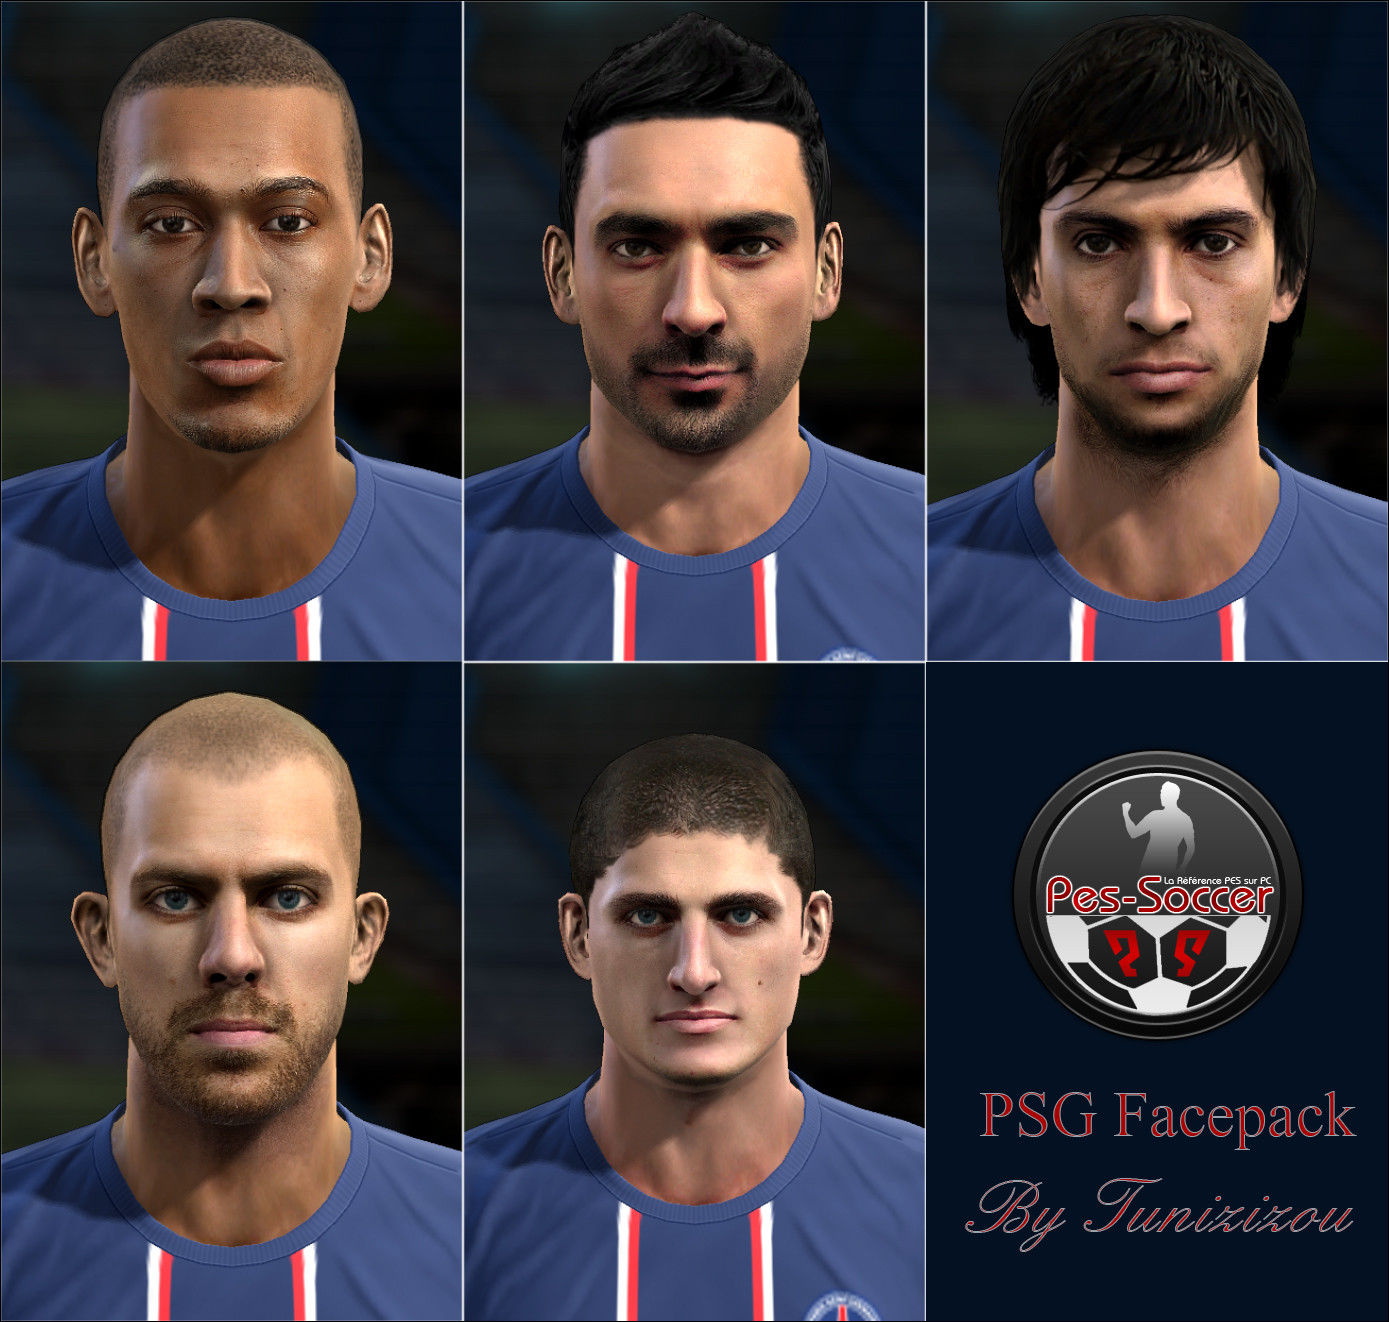 Ultigamerz Pes 2010 Pes 2011 Face: PES-MODIF: Download PSG Facepack PES 2013 By Tunizizou